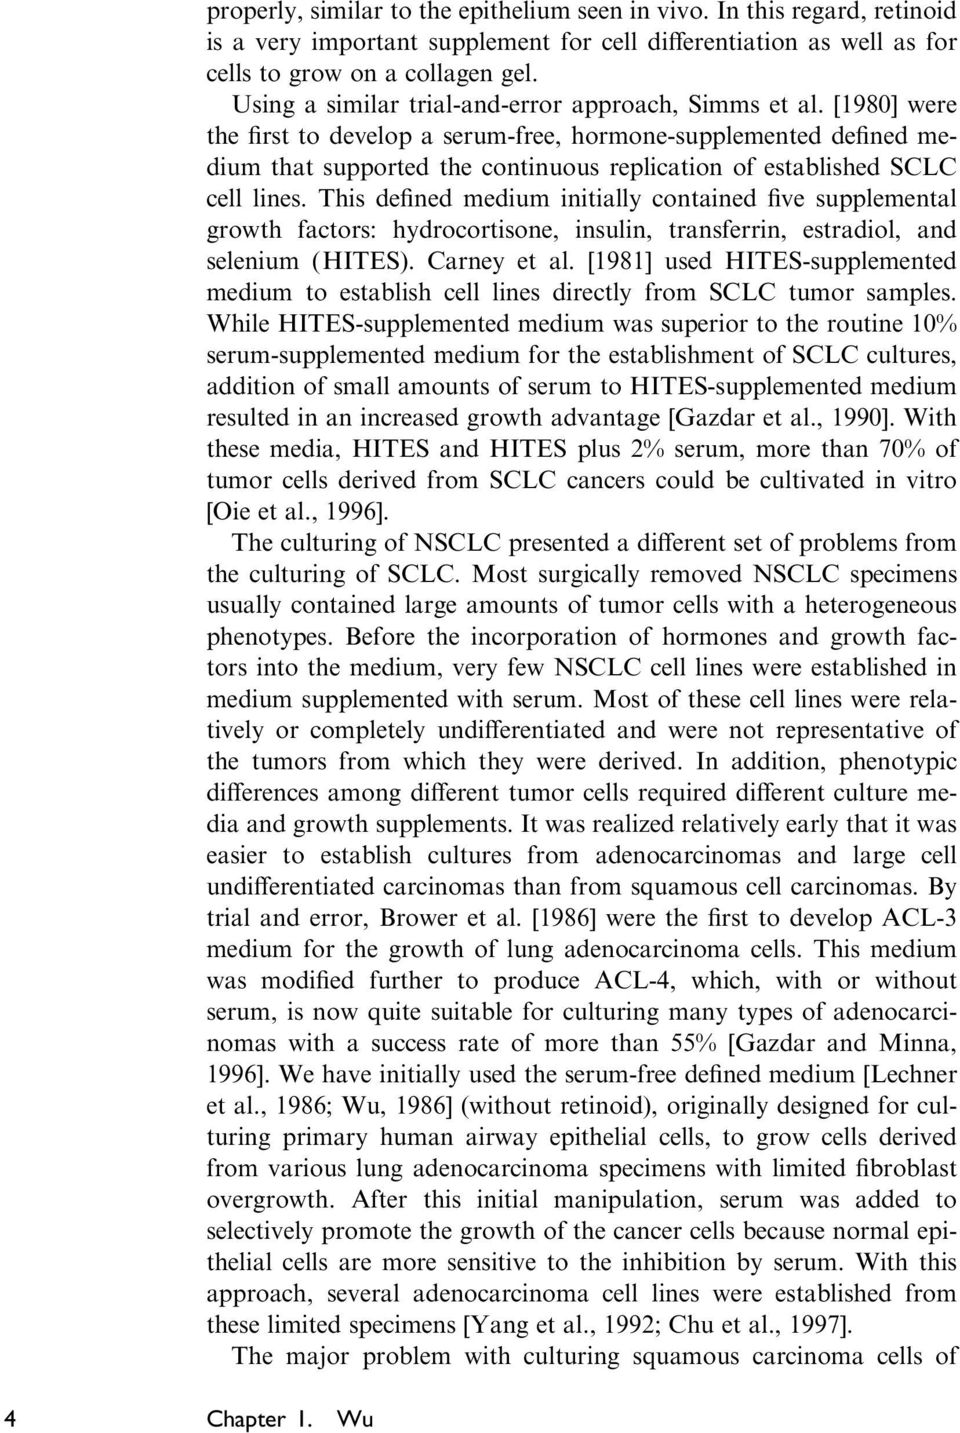 [1980] were the first to develop a serum-free, hormone-supplemented defined medium that supported the continuous replication of established SCLC cell lines.